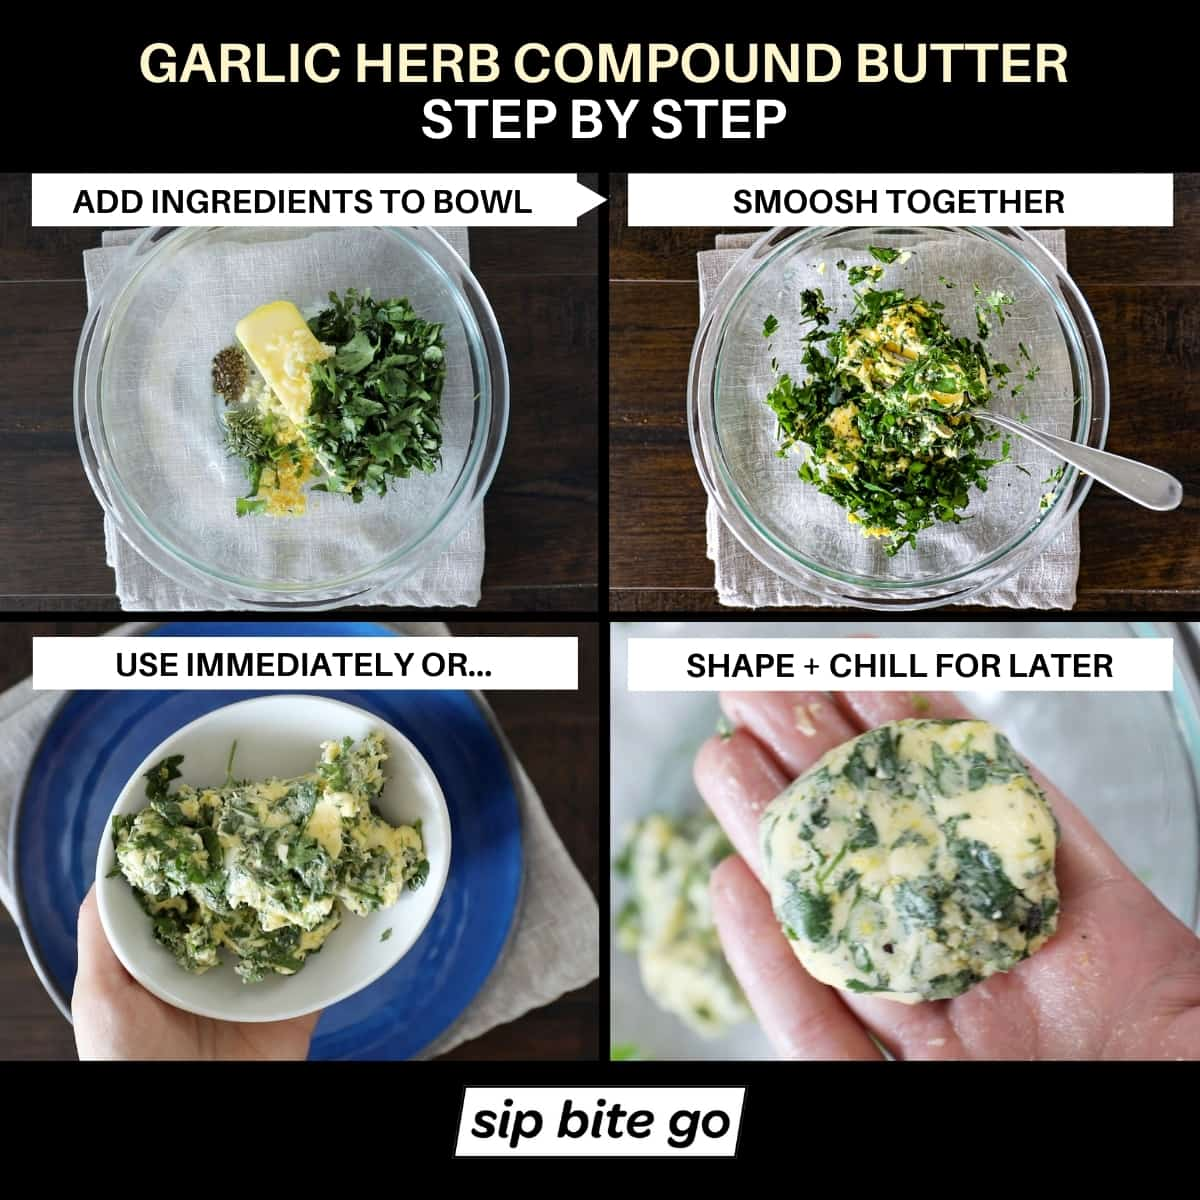 Infographic chart with text captions and images demonstrating step by step how to mix ingredients for garlic herb compound butter and serve it immediately or shape butter into a log for later.